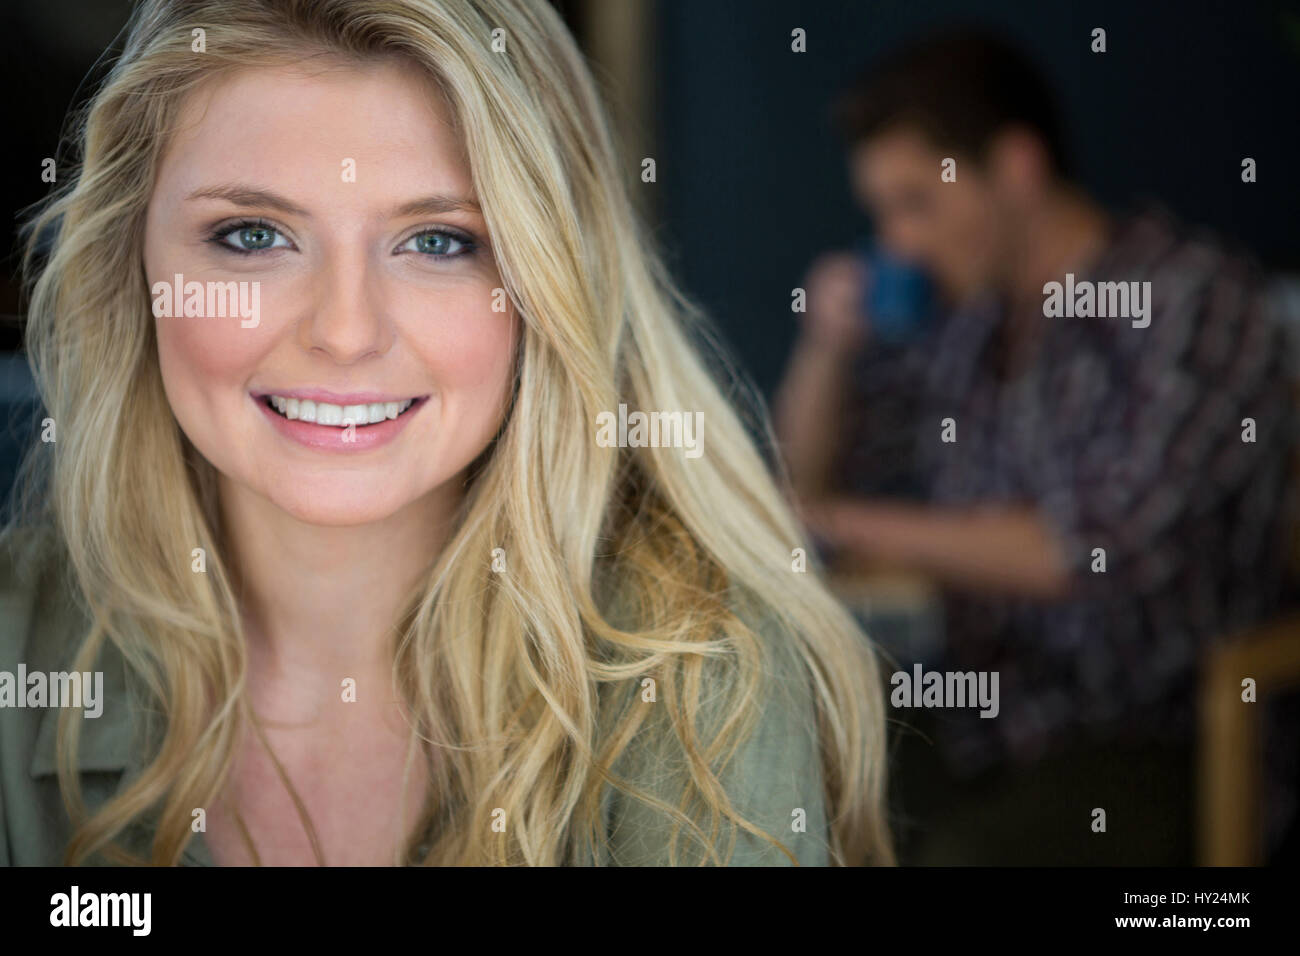 Portrait de la belle jeune femme aux cheveux blonds in coffee shop Photo Stock